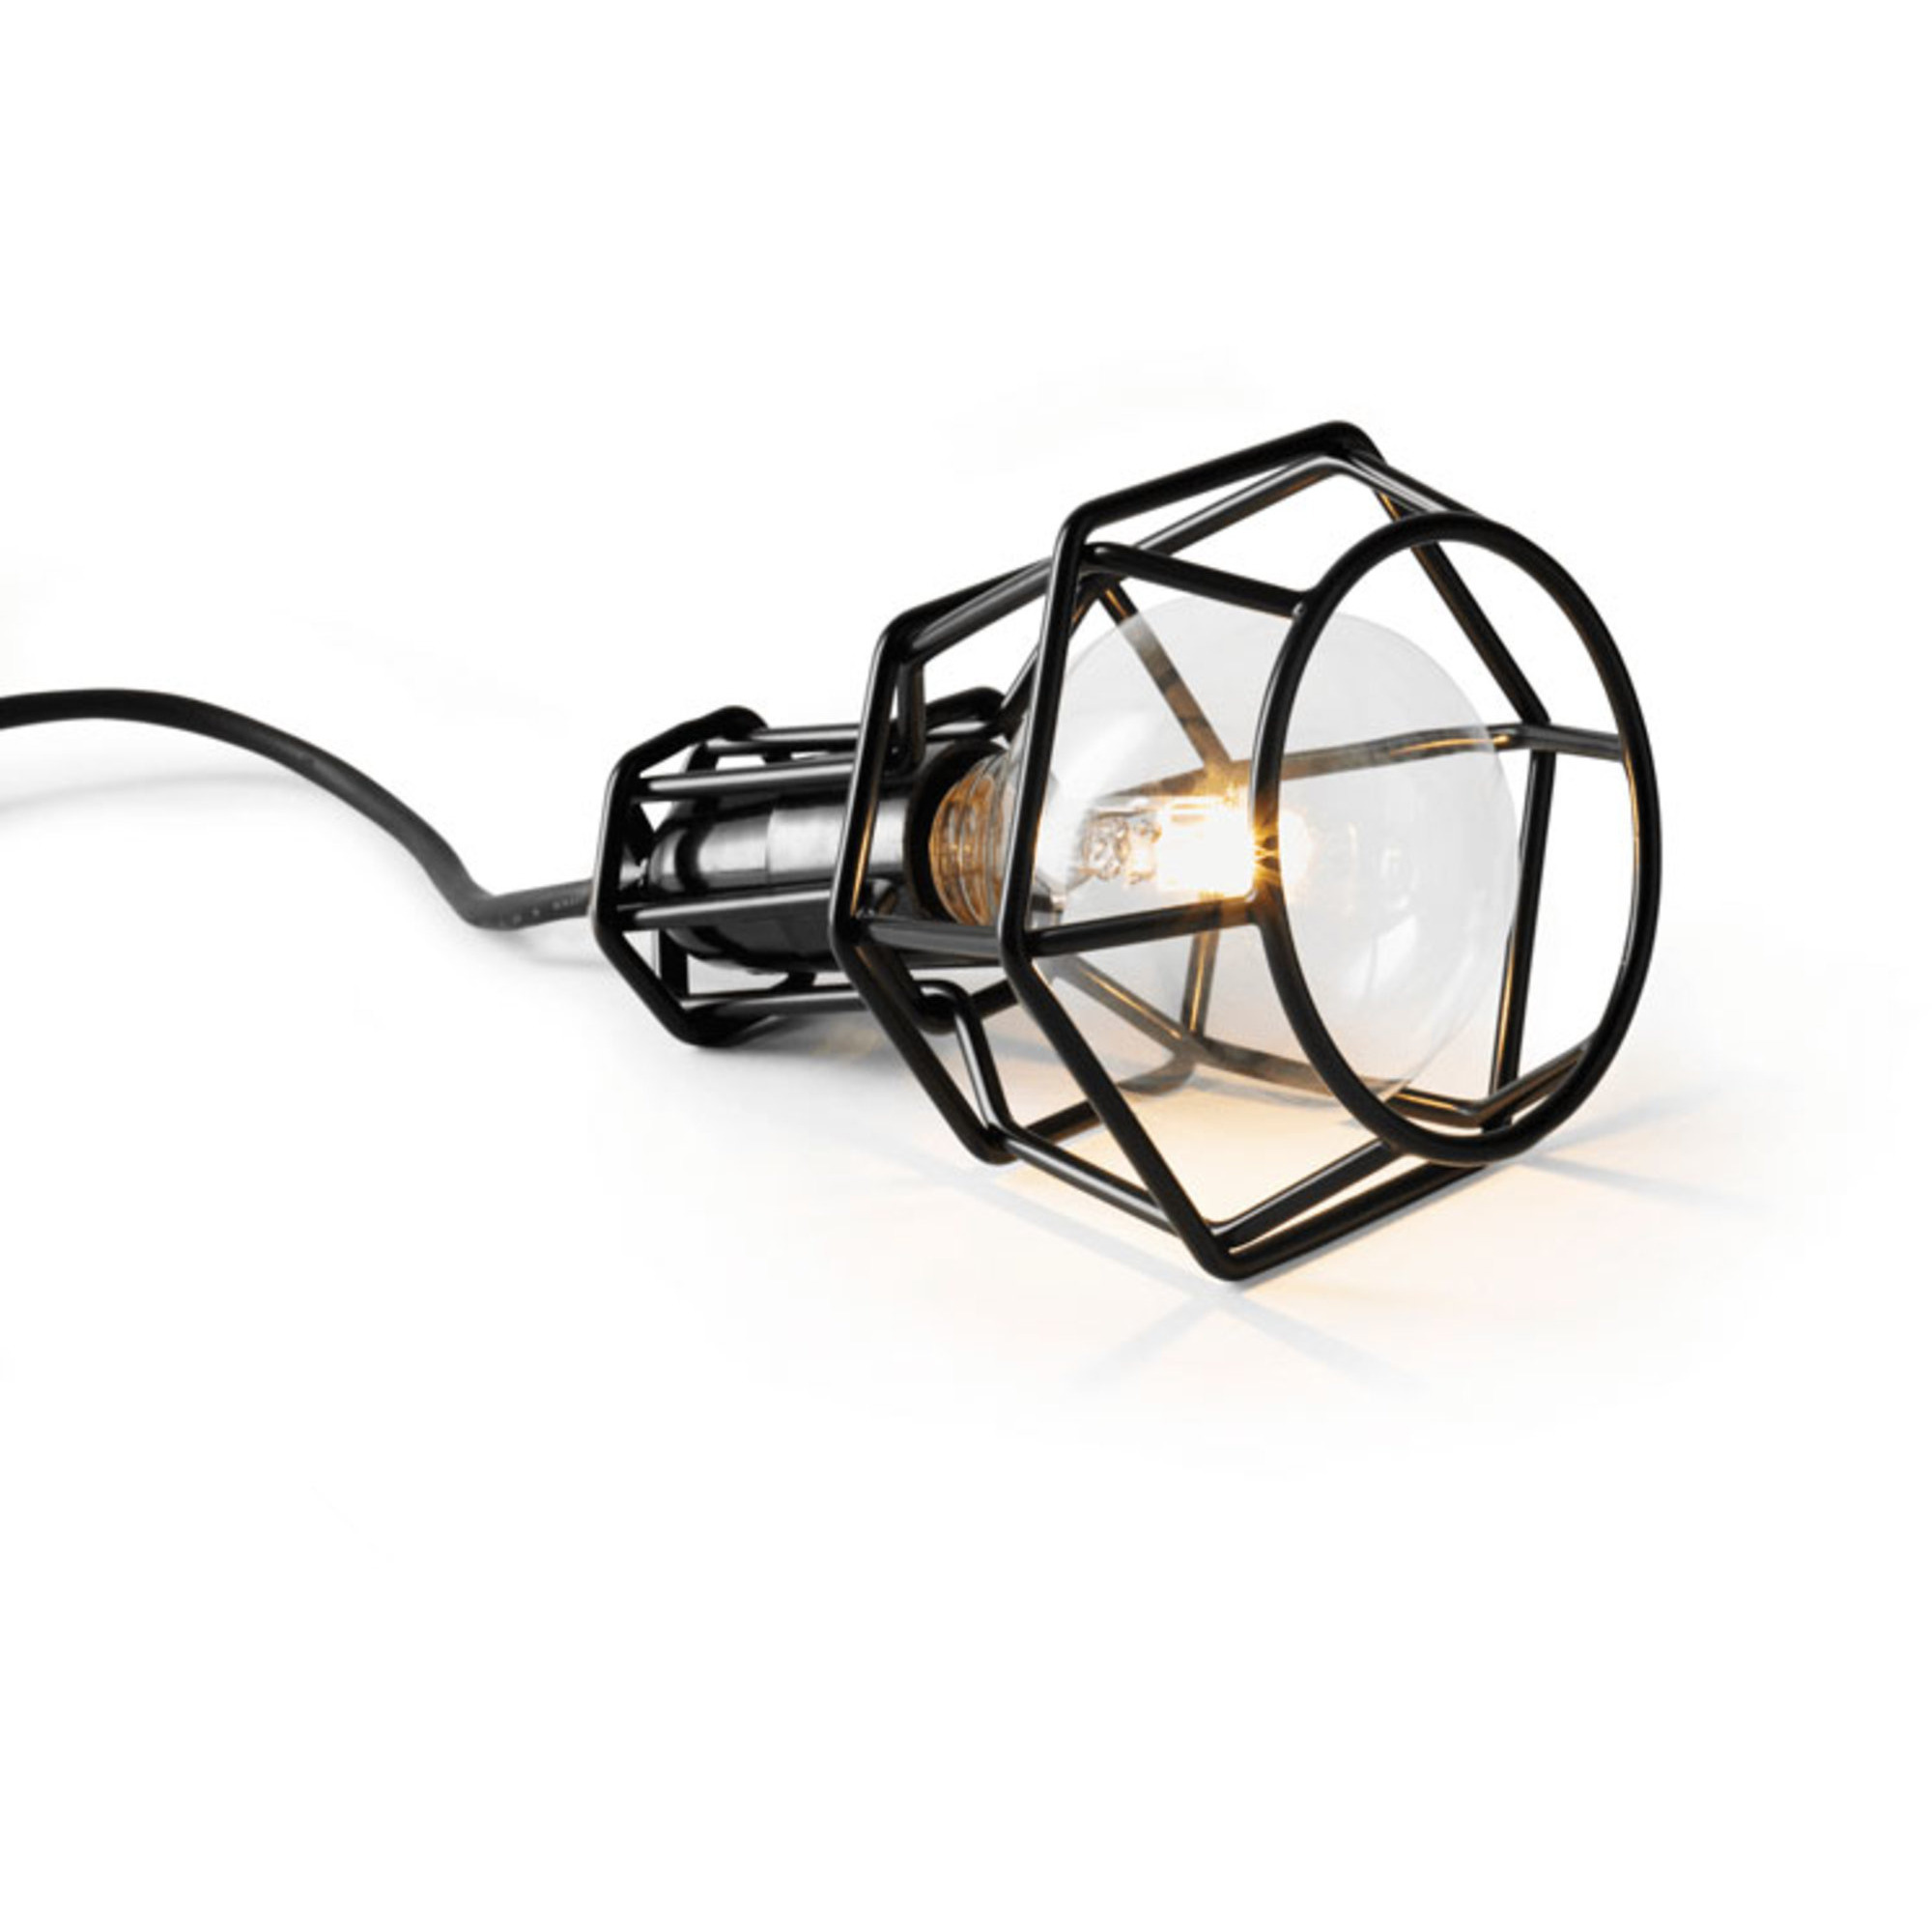 Design House Stockholm Work Lamp Svart Limited Edition